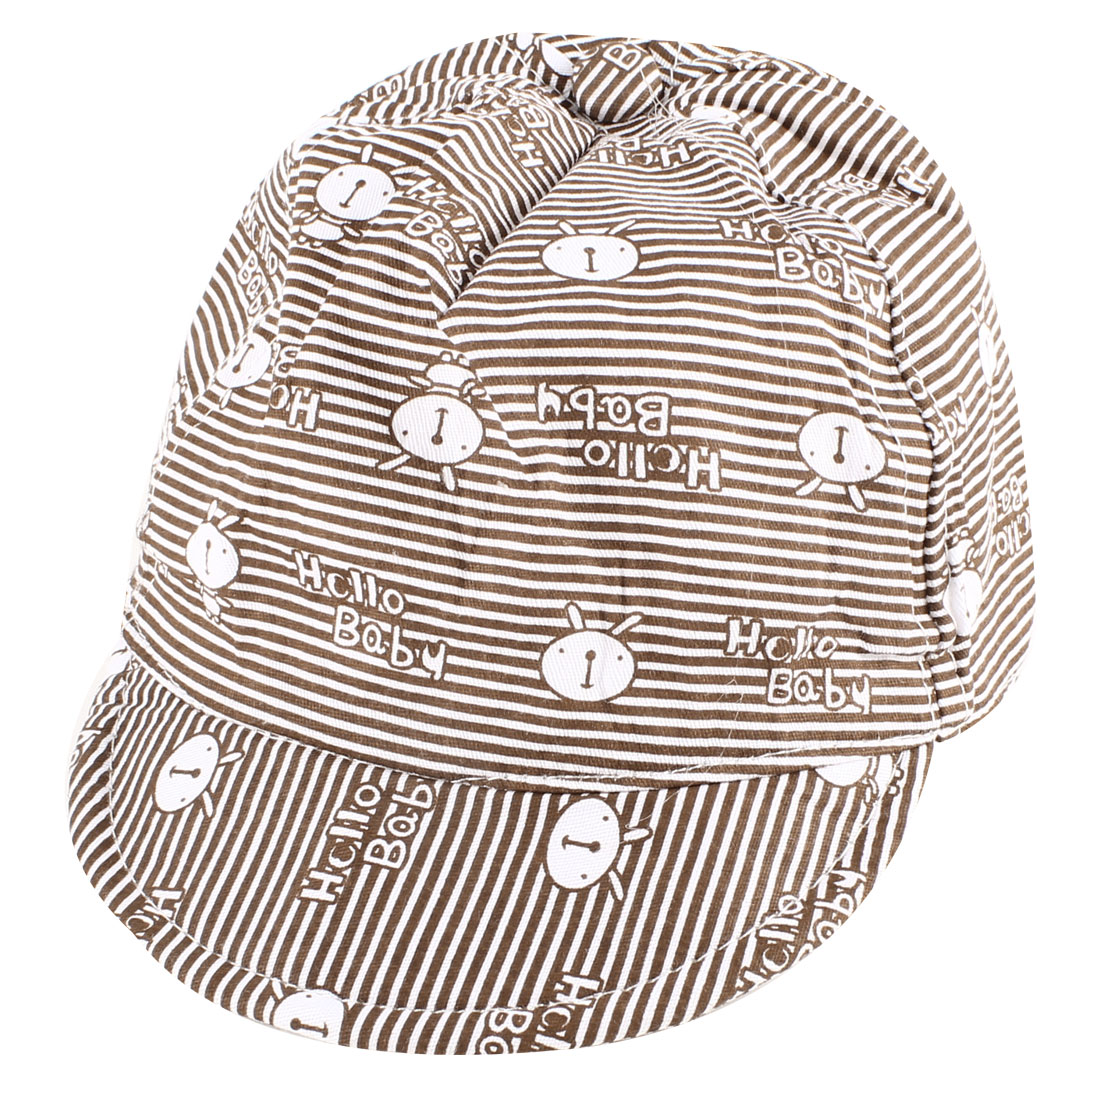 Stripes Prints Elastic Band Ball Cap Gift Brown White for Baby Girl Boy